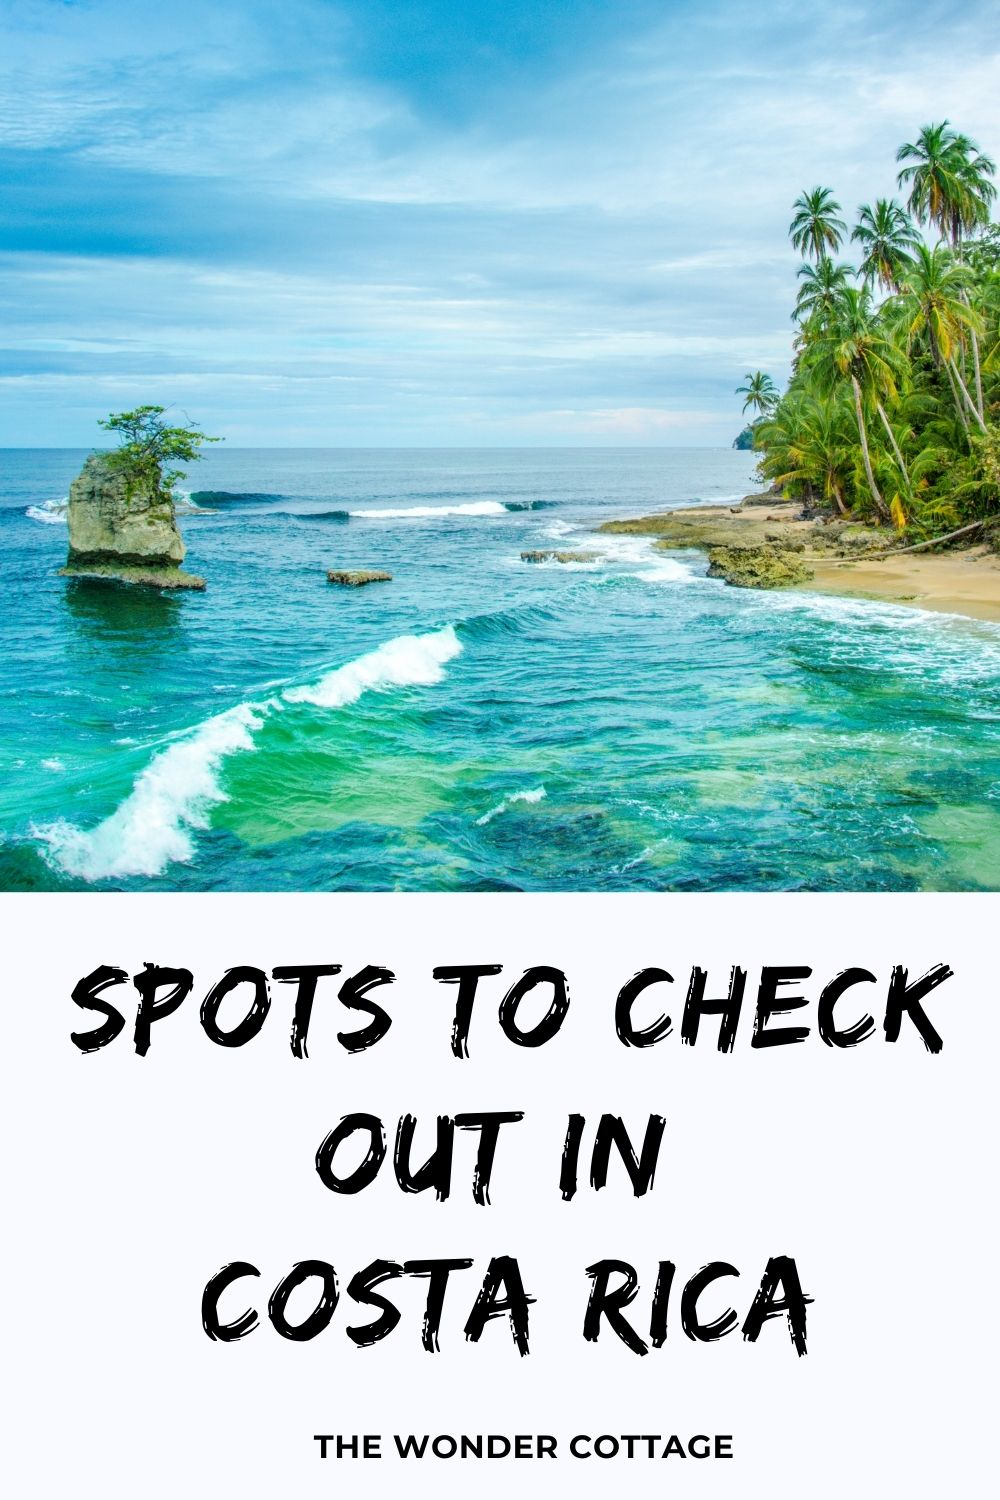 spots to check out in Costa Rica